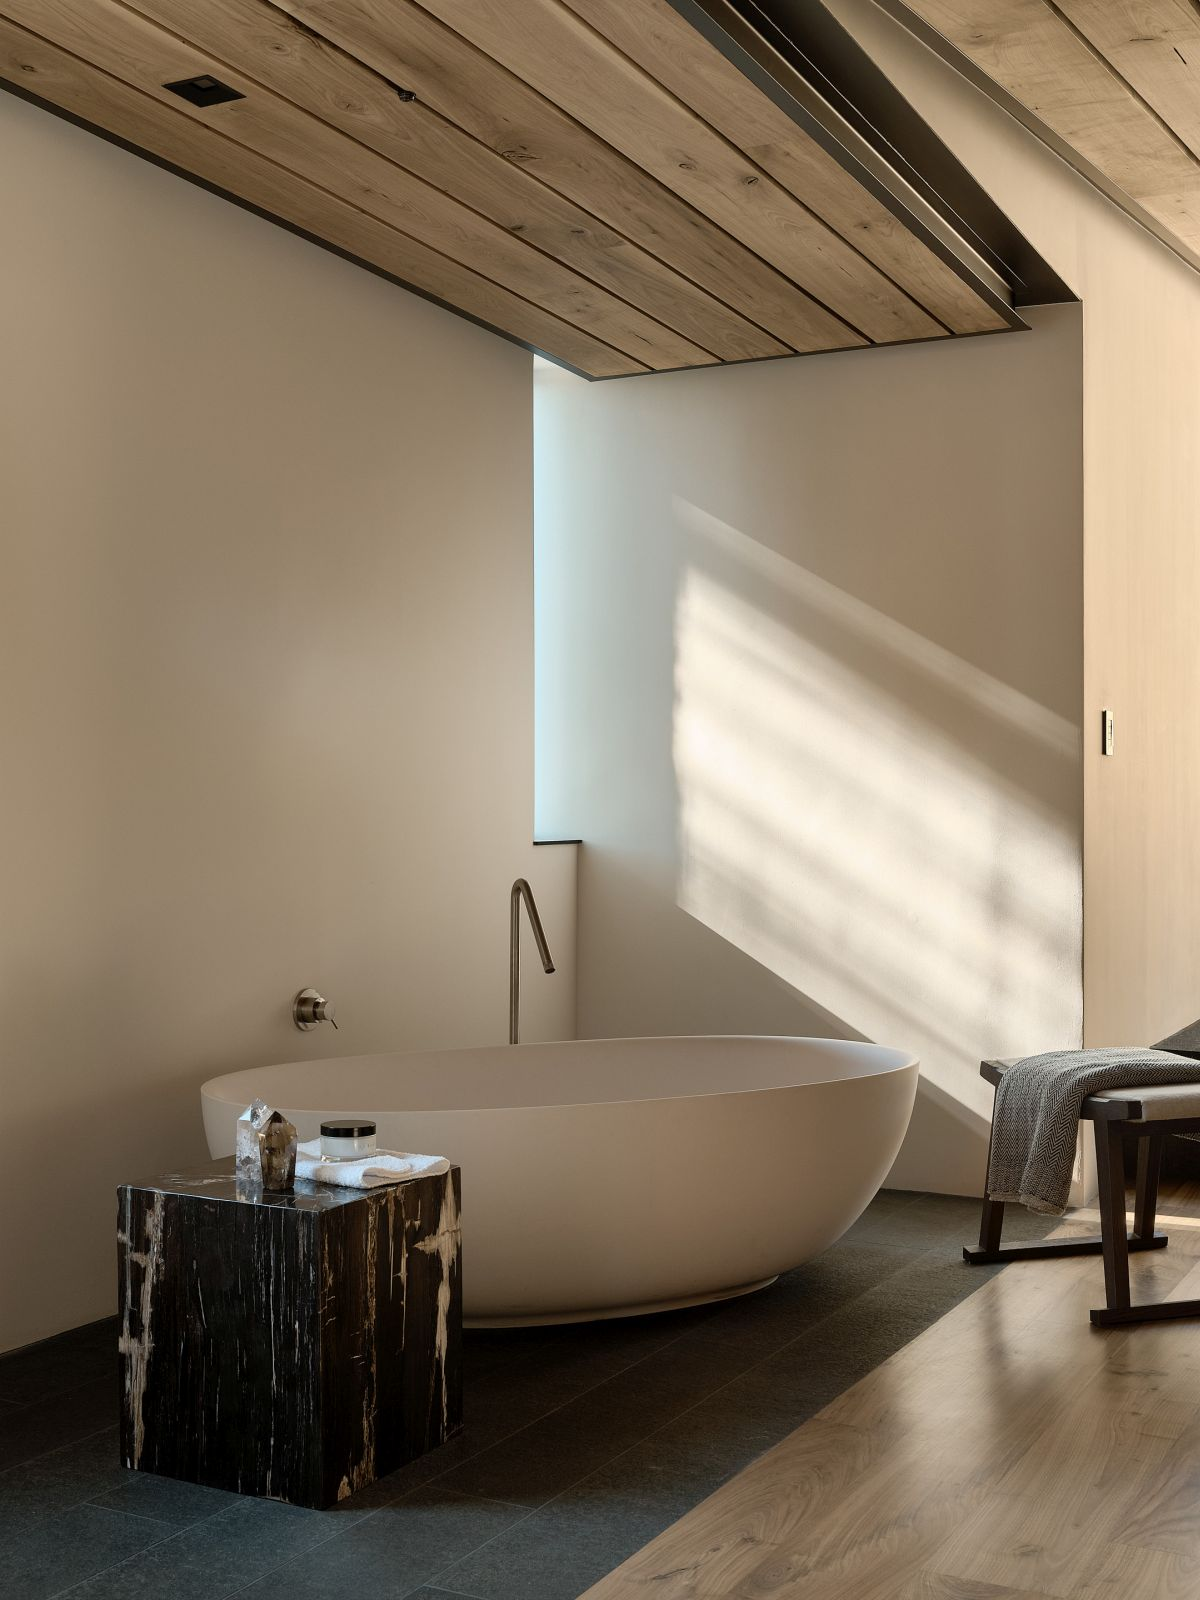 Each and every space is infused with beauty and luxury, ultimately looking very refined and elegant